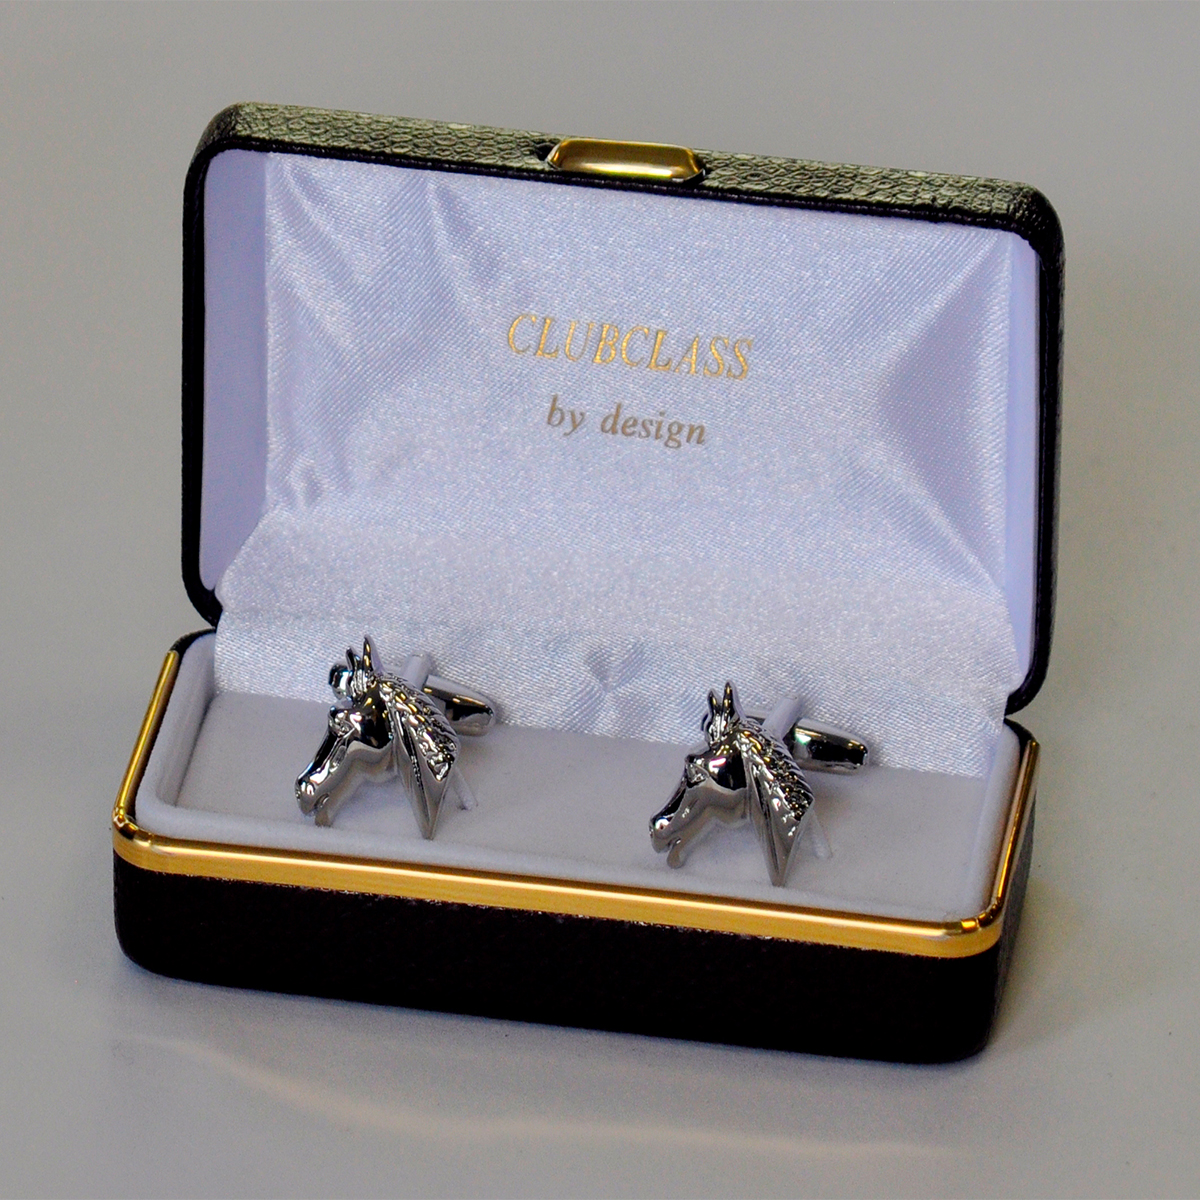 Horse Head Cuff Links - €35.00